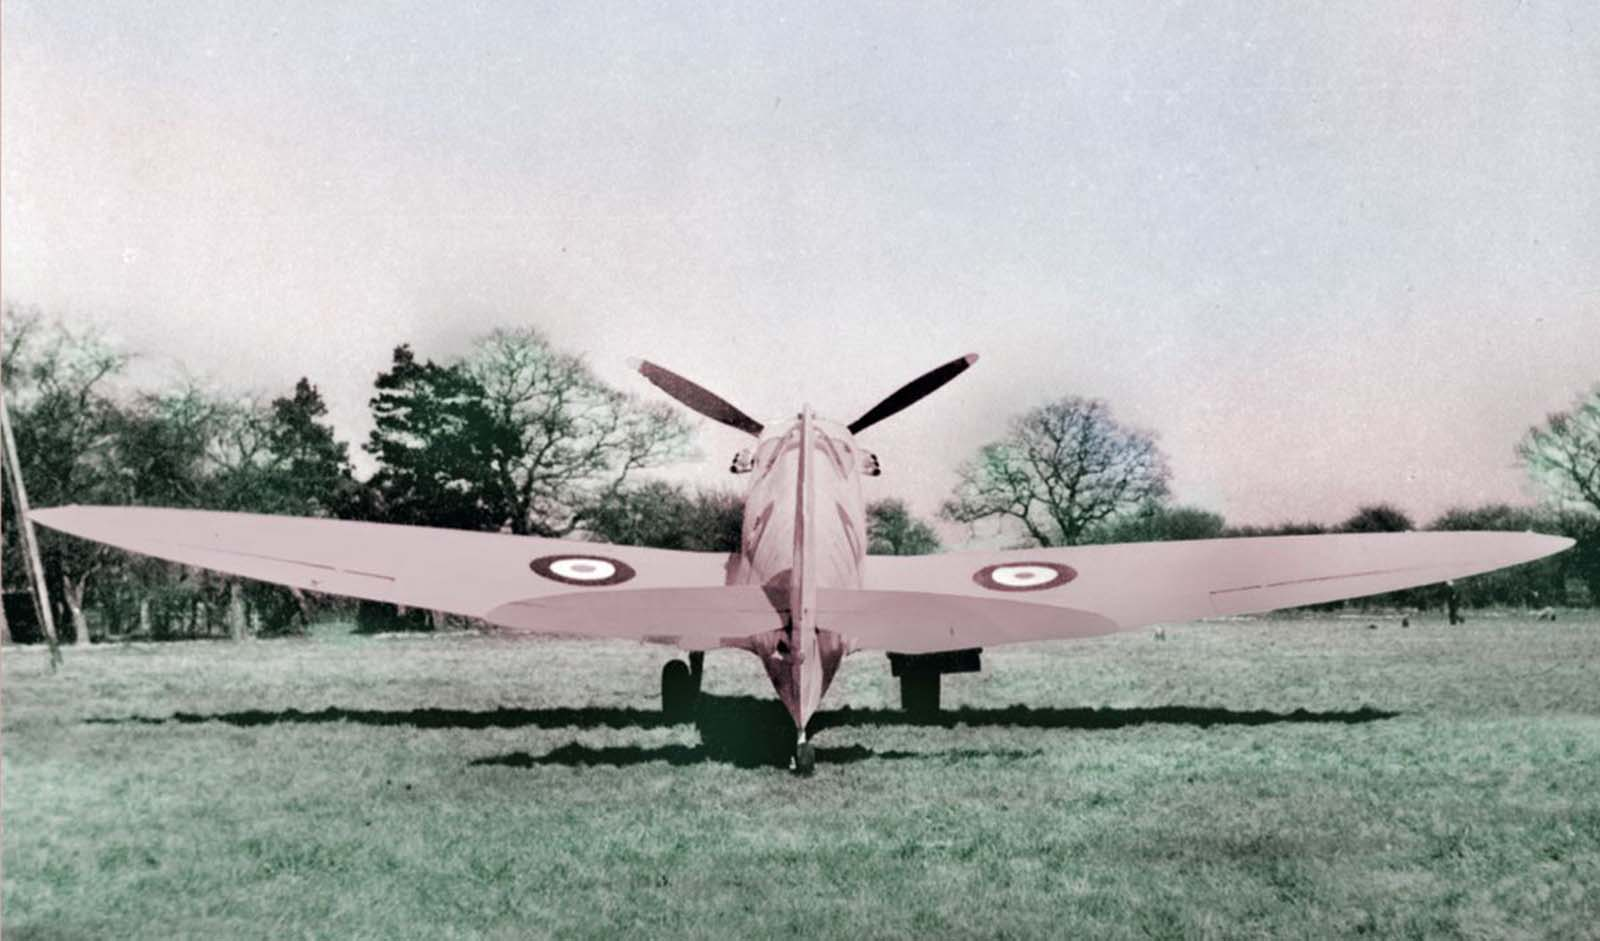 Spitfires used for photo reconnaissance missions during the day were usually painted blue, but those that went out at dusk or dawn were painted